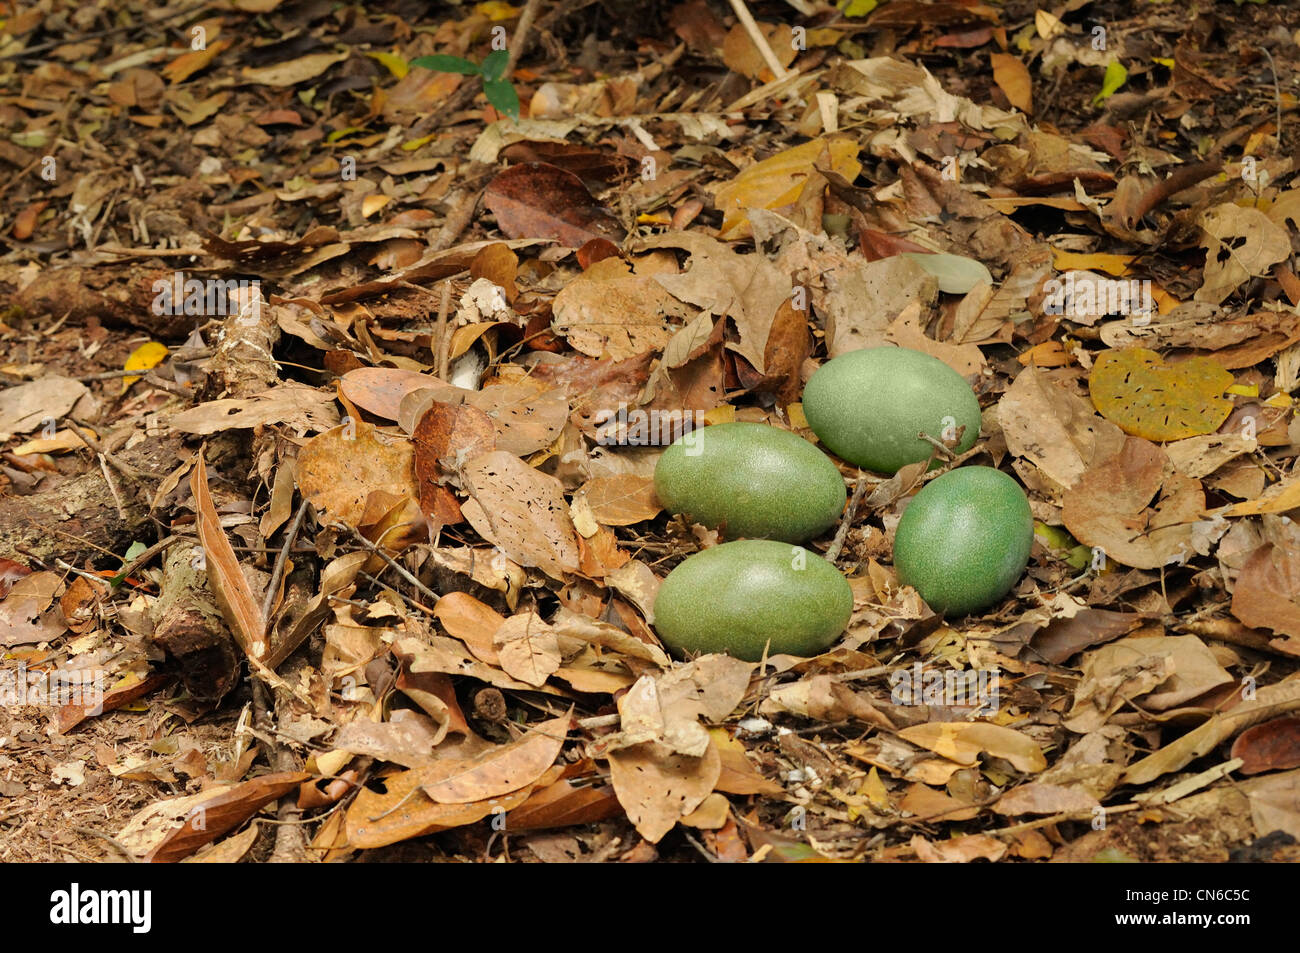 Southern Cassowary Casuarius casuarius Nest with four eggs Photographed in the Wet Tropics, north Queensland, Australia - Stock Image